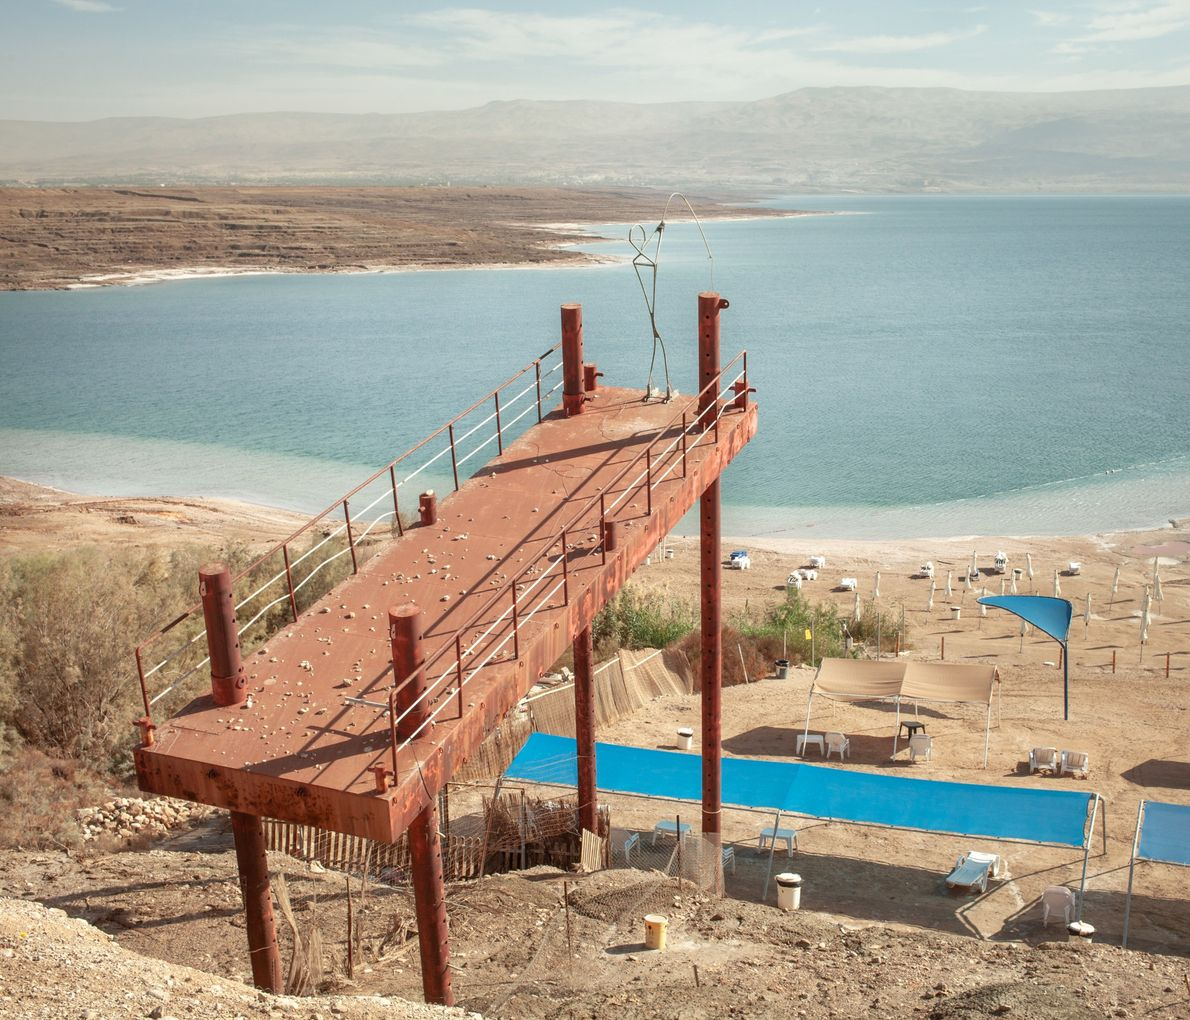 Can Israel and Jordan cooperate to save the dying Dead Sea?